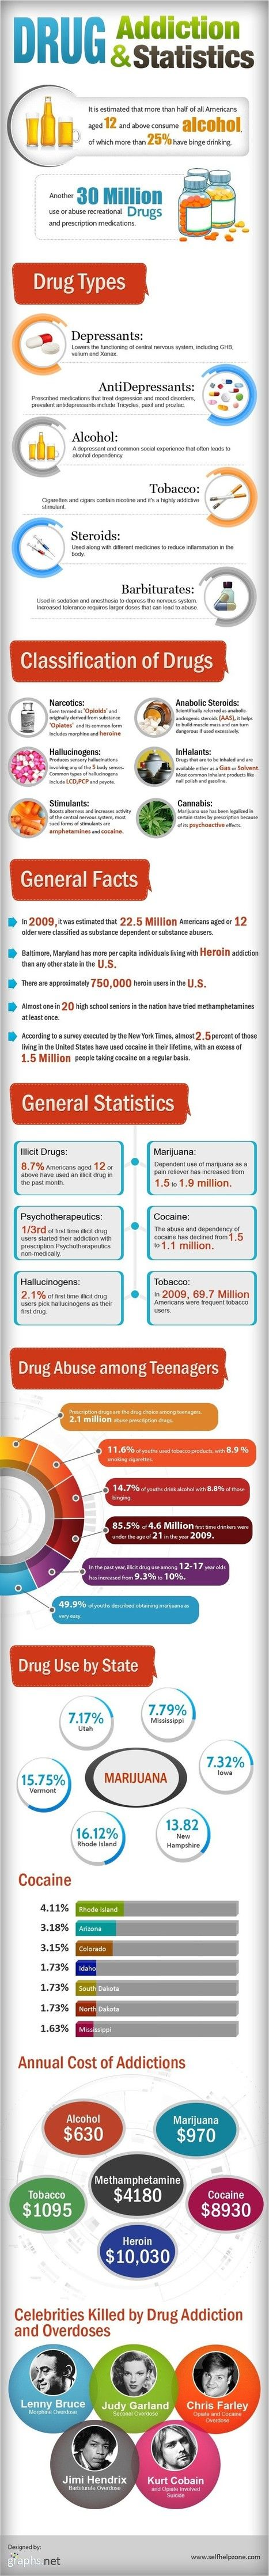 Drug Addiction: Stats, Types, Classifications, Facts & Cost   Behavioral Health and Addictive Disorders   Scoop.it